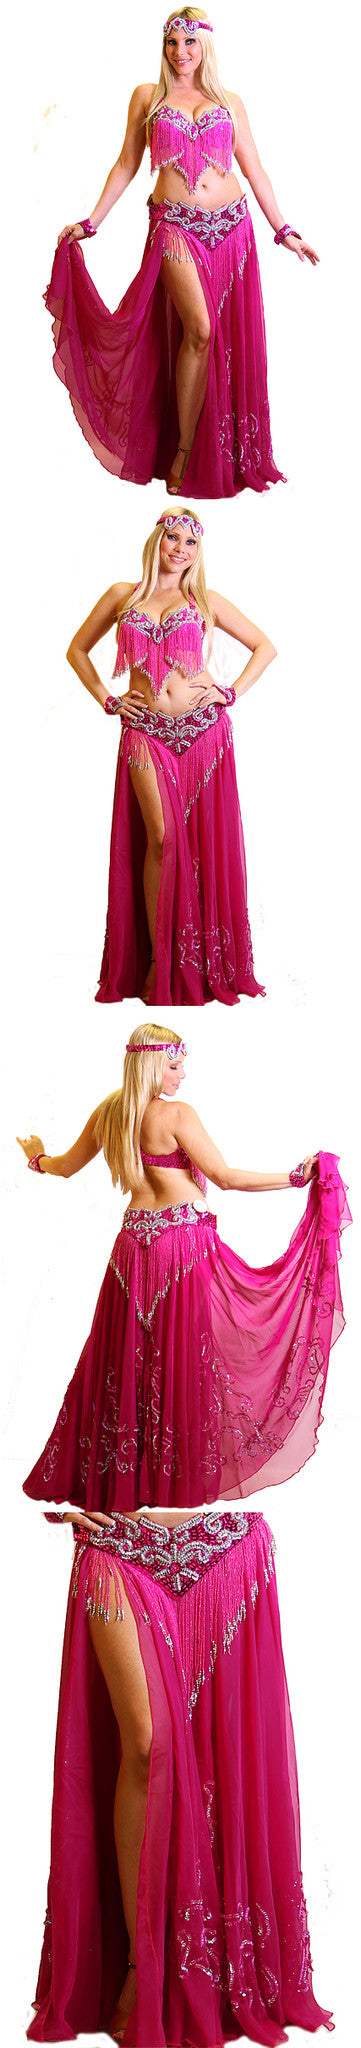 Pharaonics of Egypt Arabesque/sohir zaki Skirtveil Set